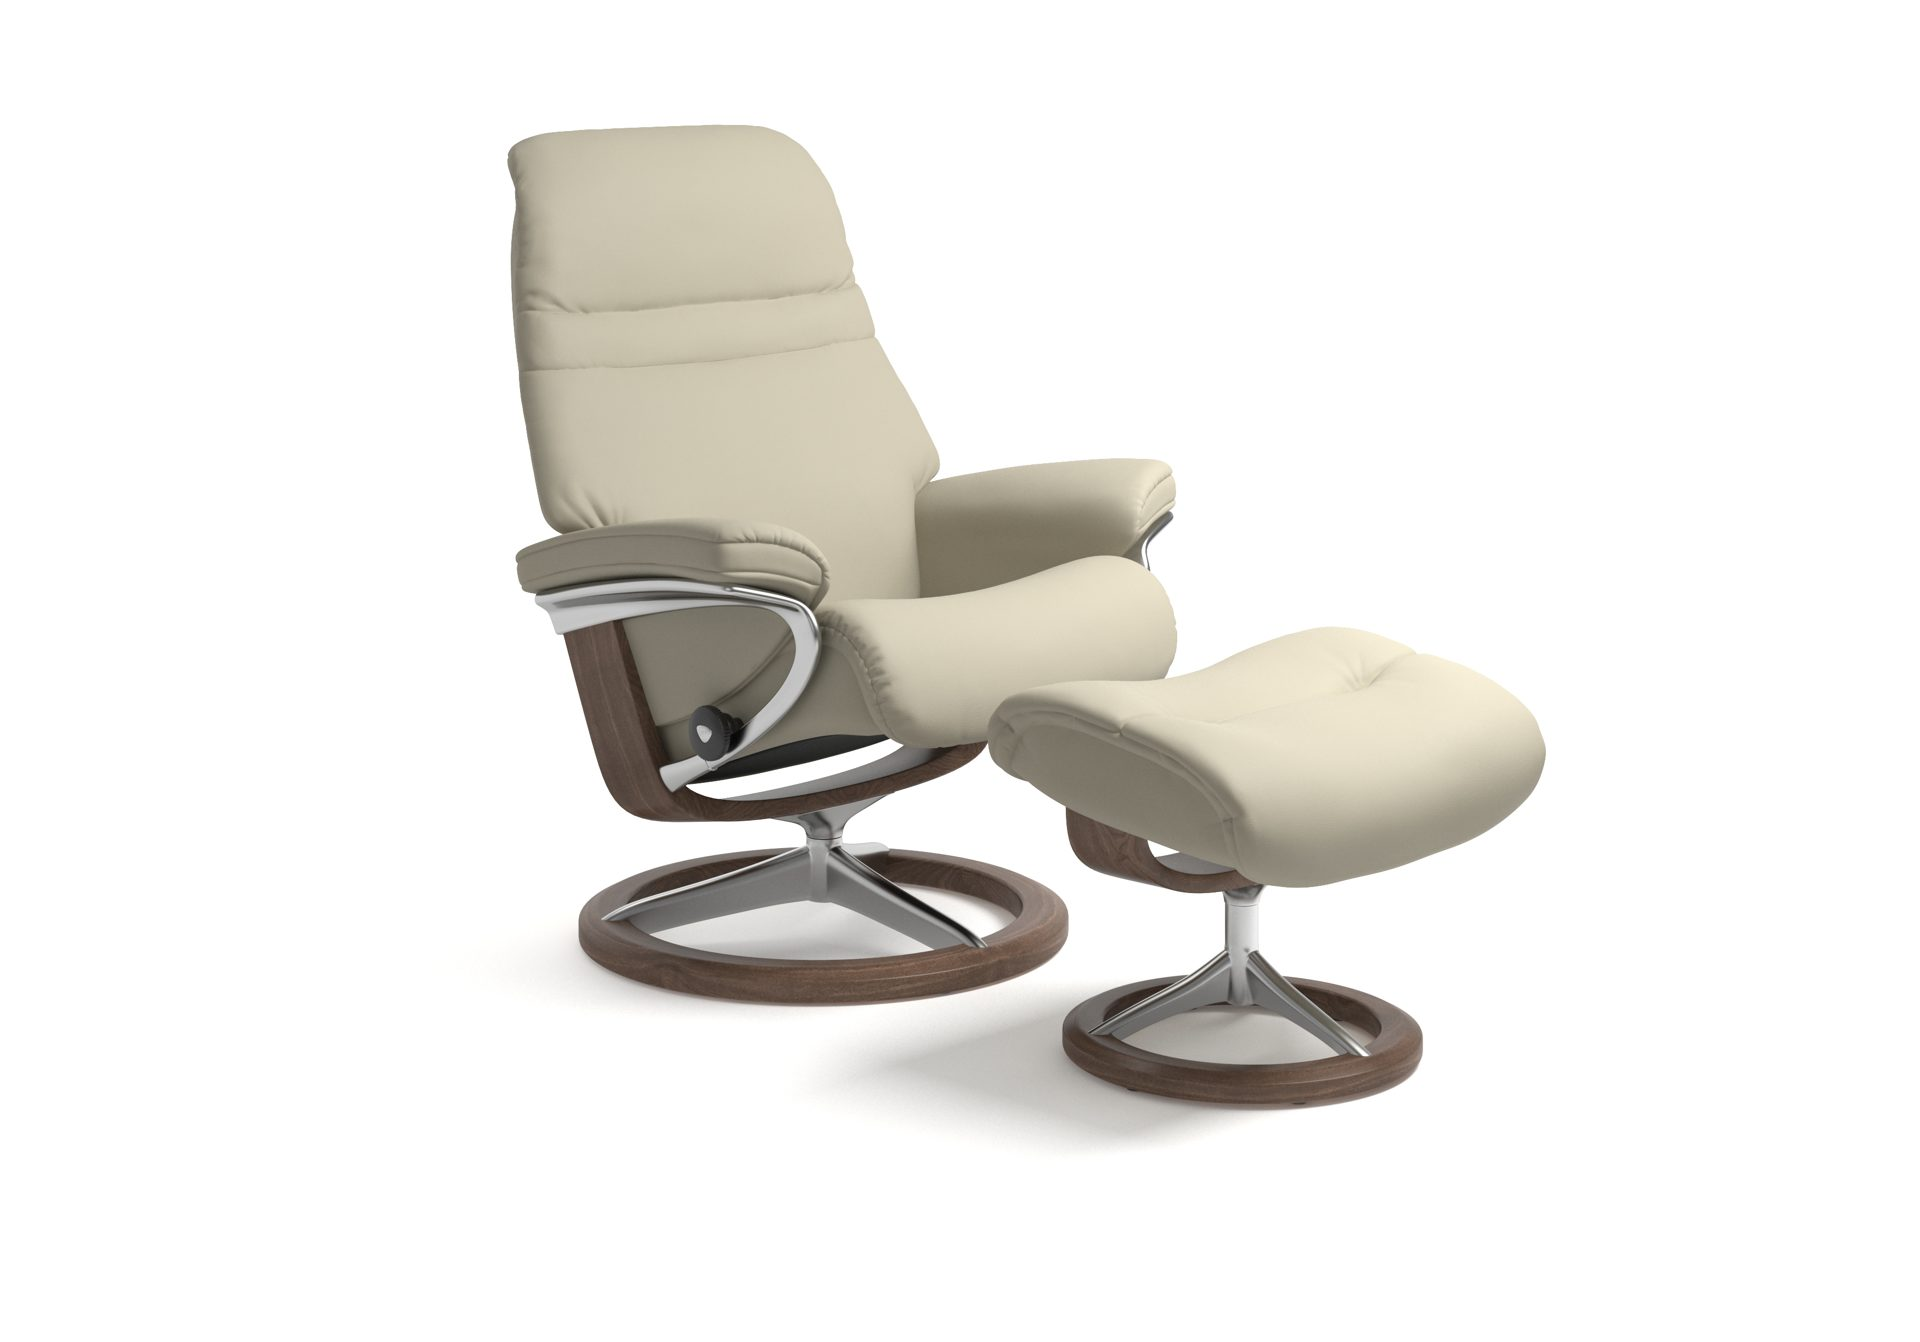 Stressless Sessel Inkl. Hocker Modell Sunrise (m) Classic Stressless Sessel Drehbar